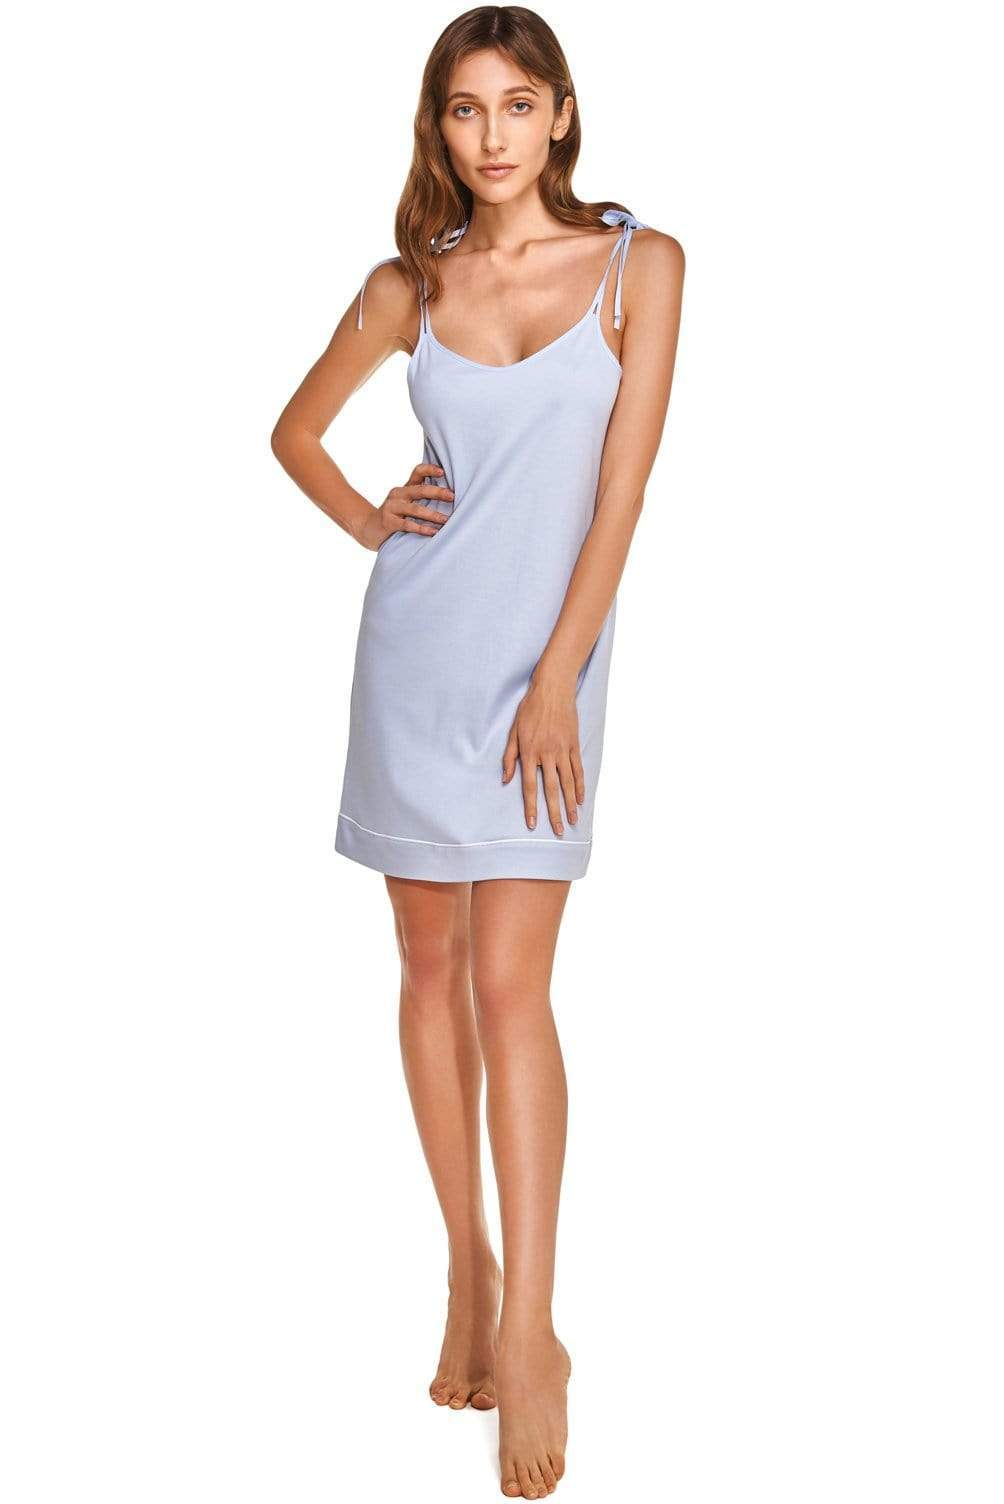 Women's Night Dress in Organic Luxury Cotton. from Slow Nature